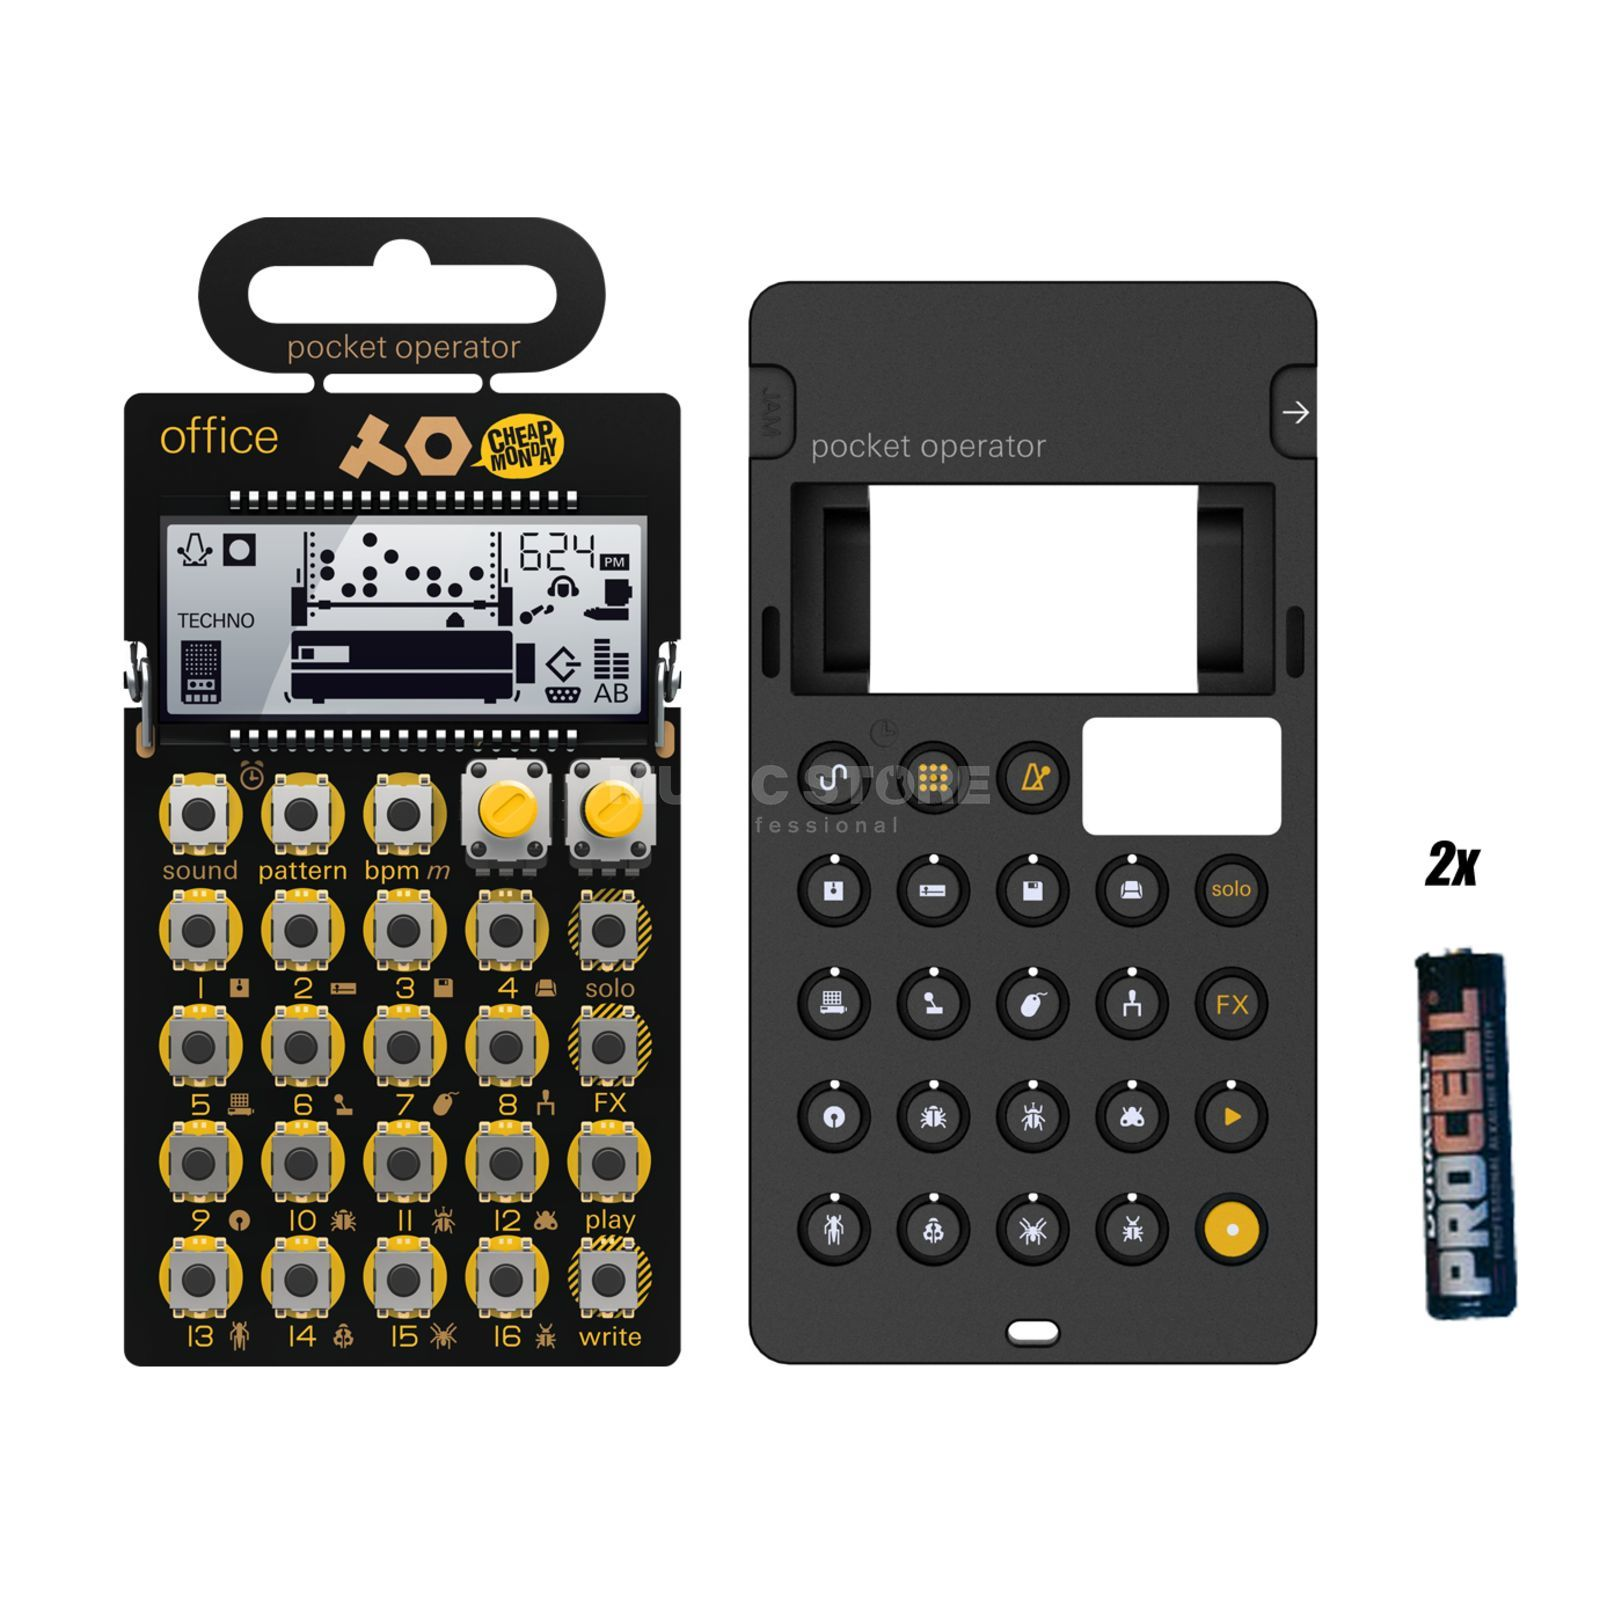 Teenage Engineering PO-24 office Complete - Set Product Image